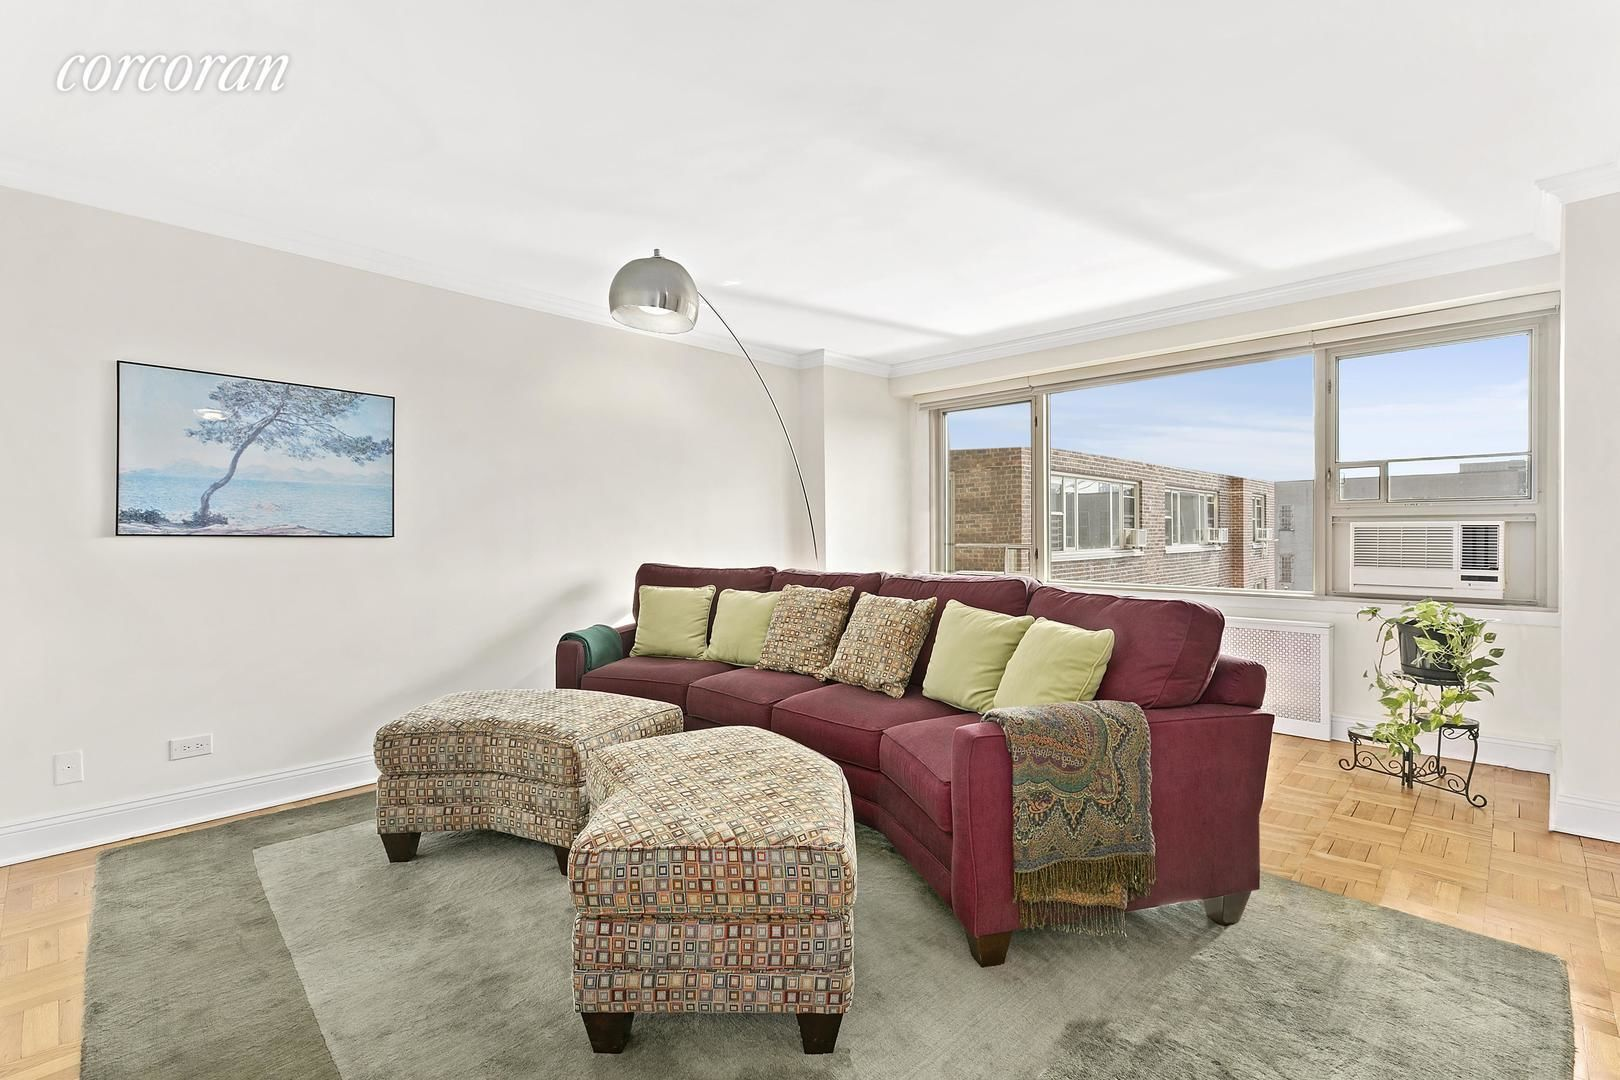 Apartment for sale at 900 West 190th Street, Apt 6L